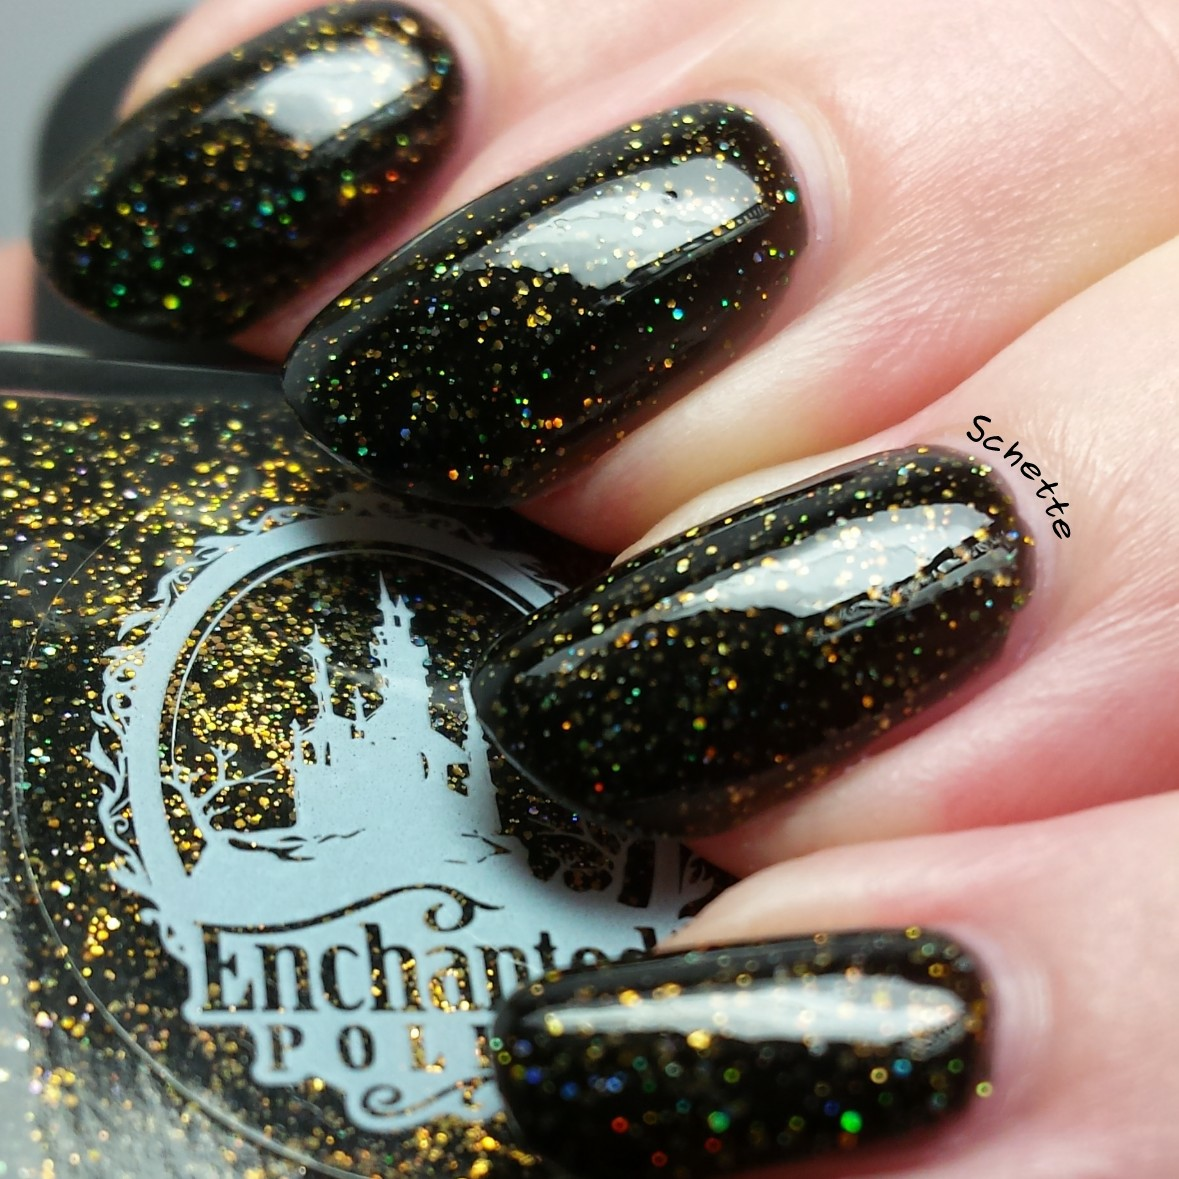 Enchanted Polish - Fright Night